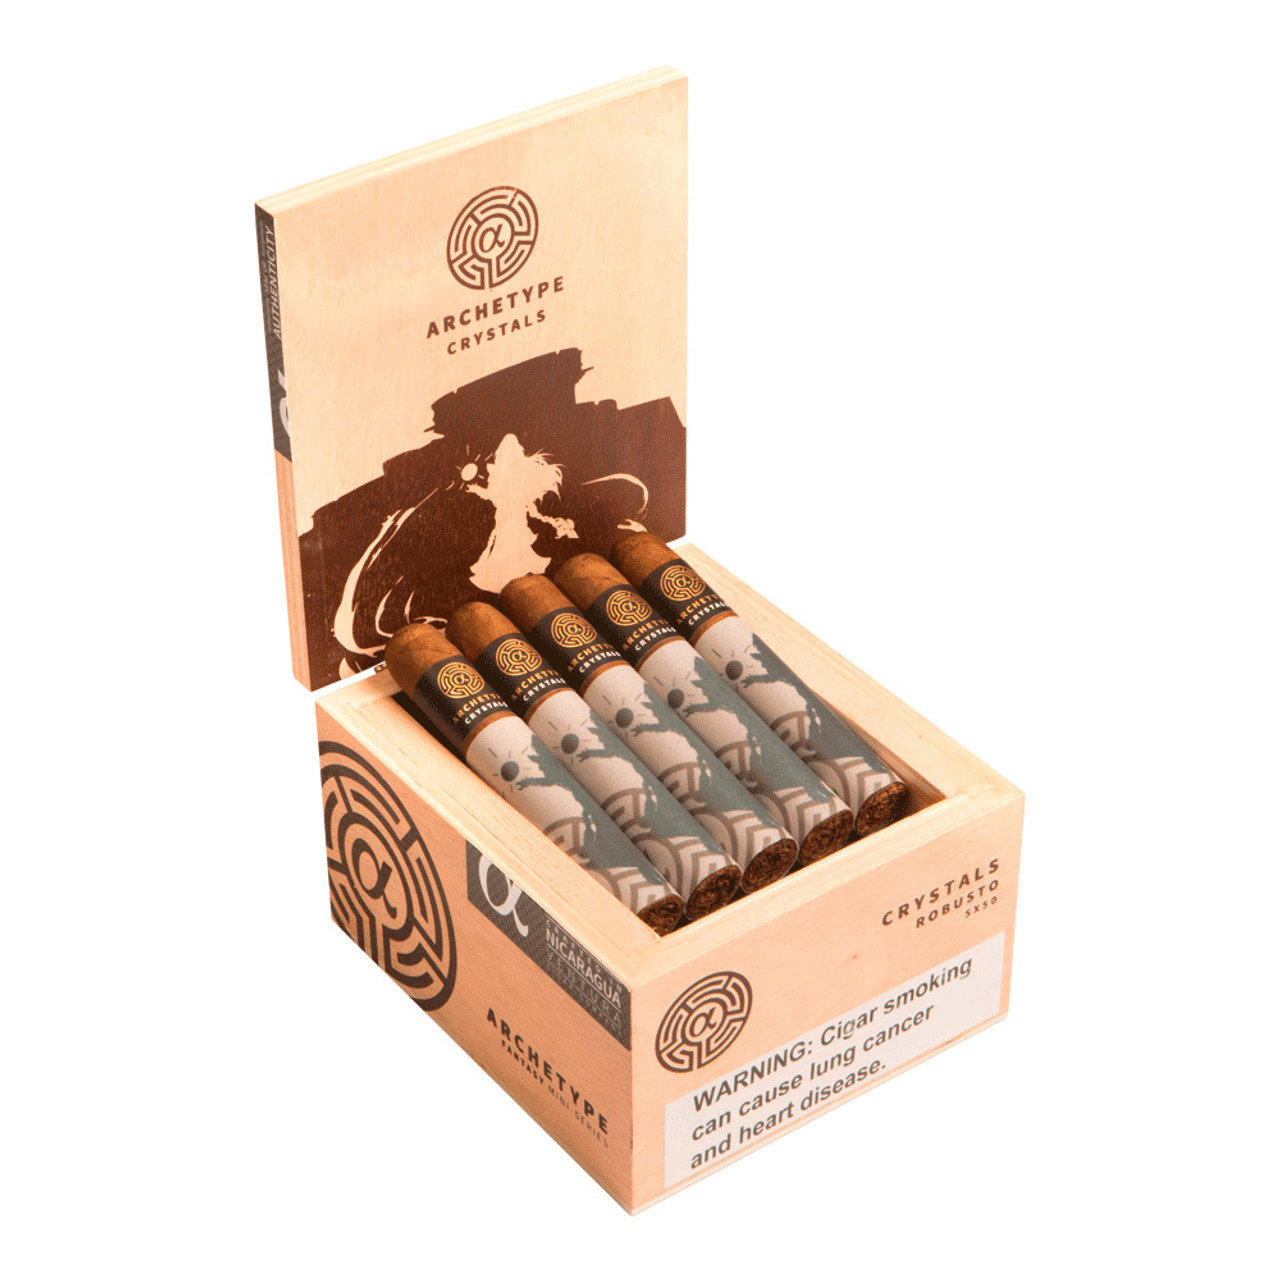 Archetype Curses Robusto Cigars - 5 x 50 (Box of 20)